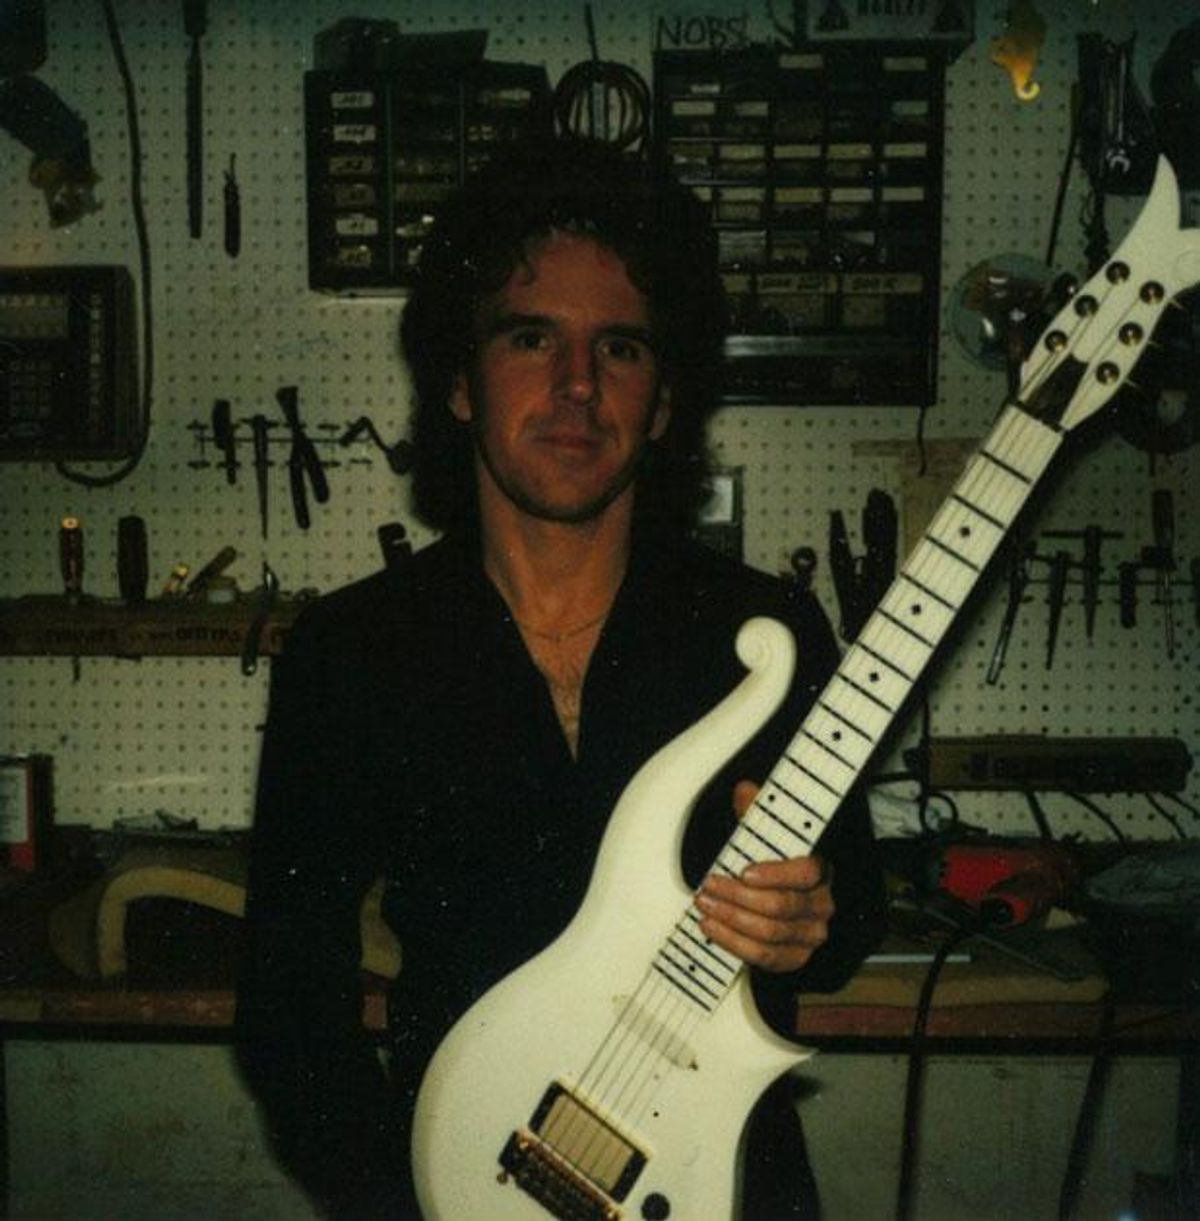 Luthier Dave Rusan